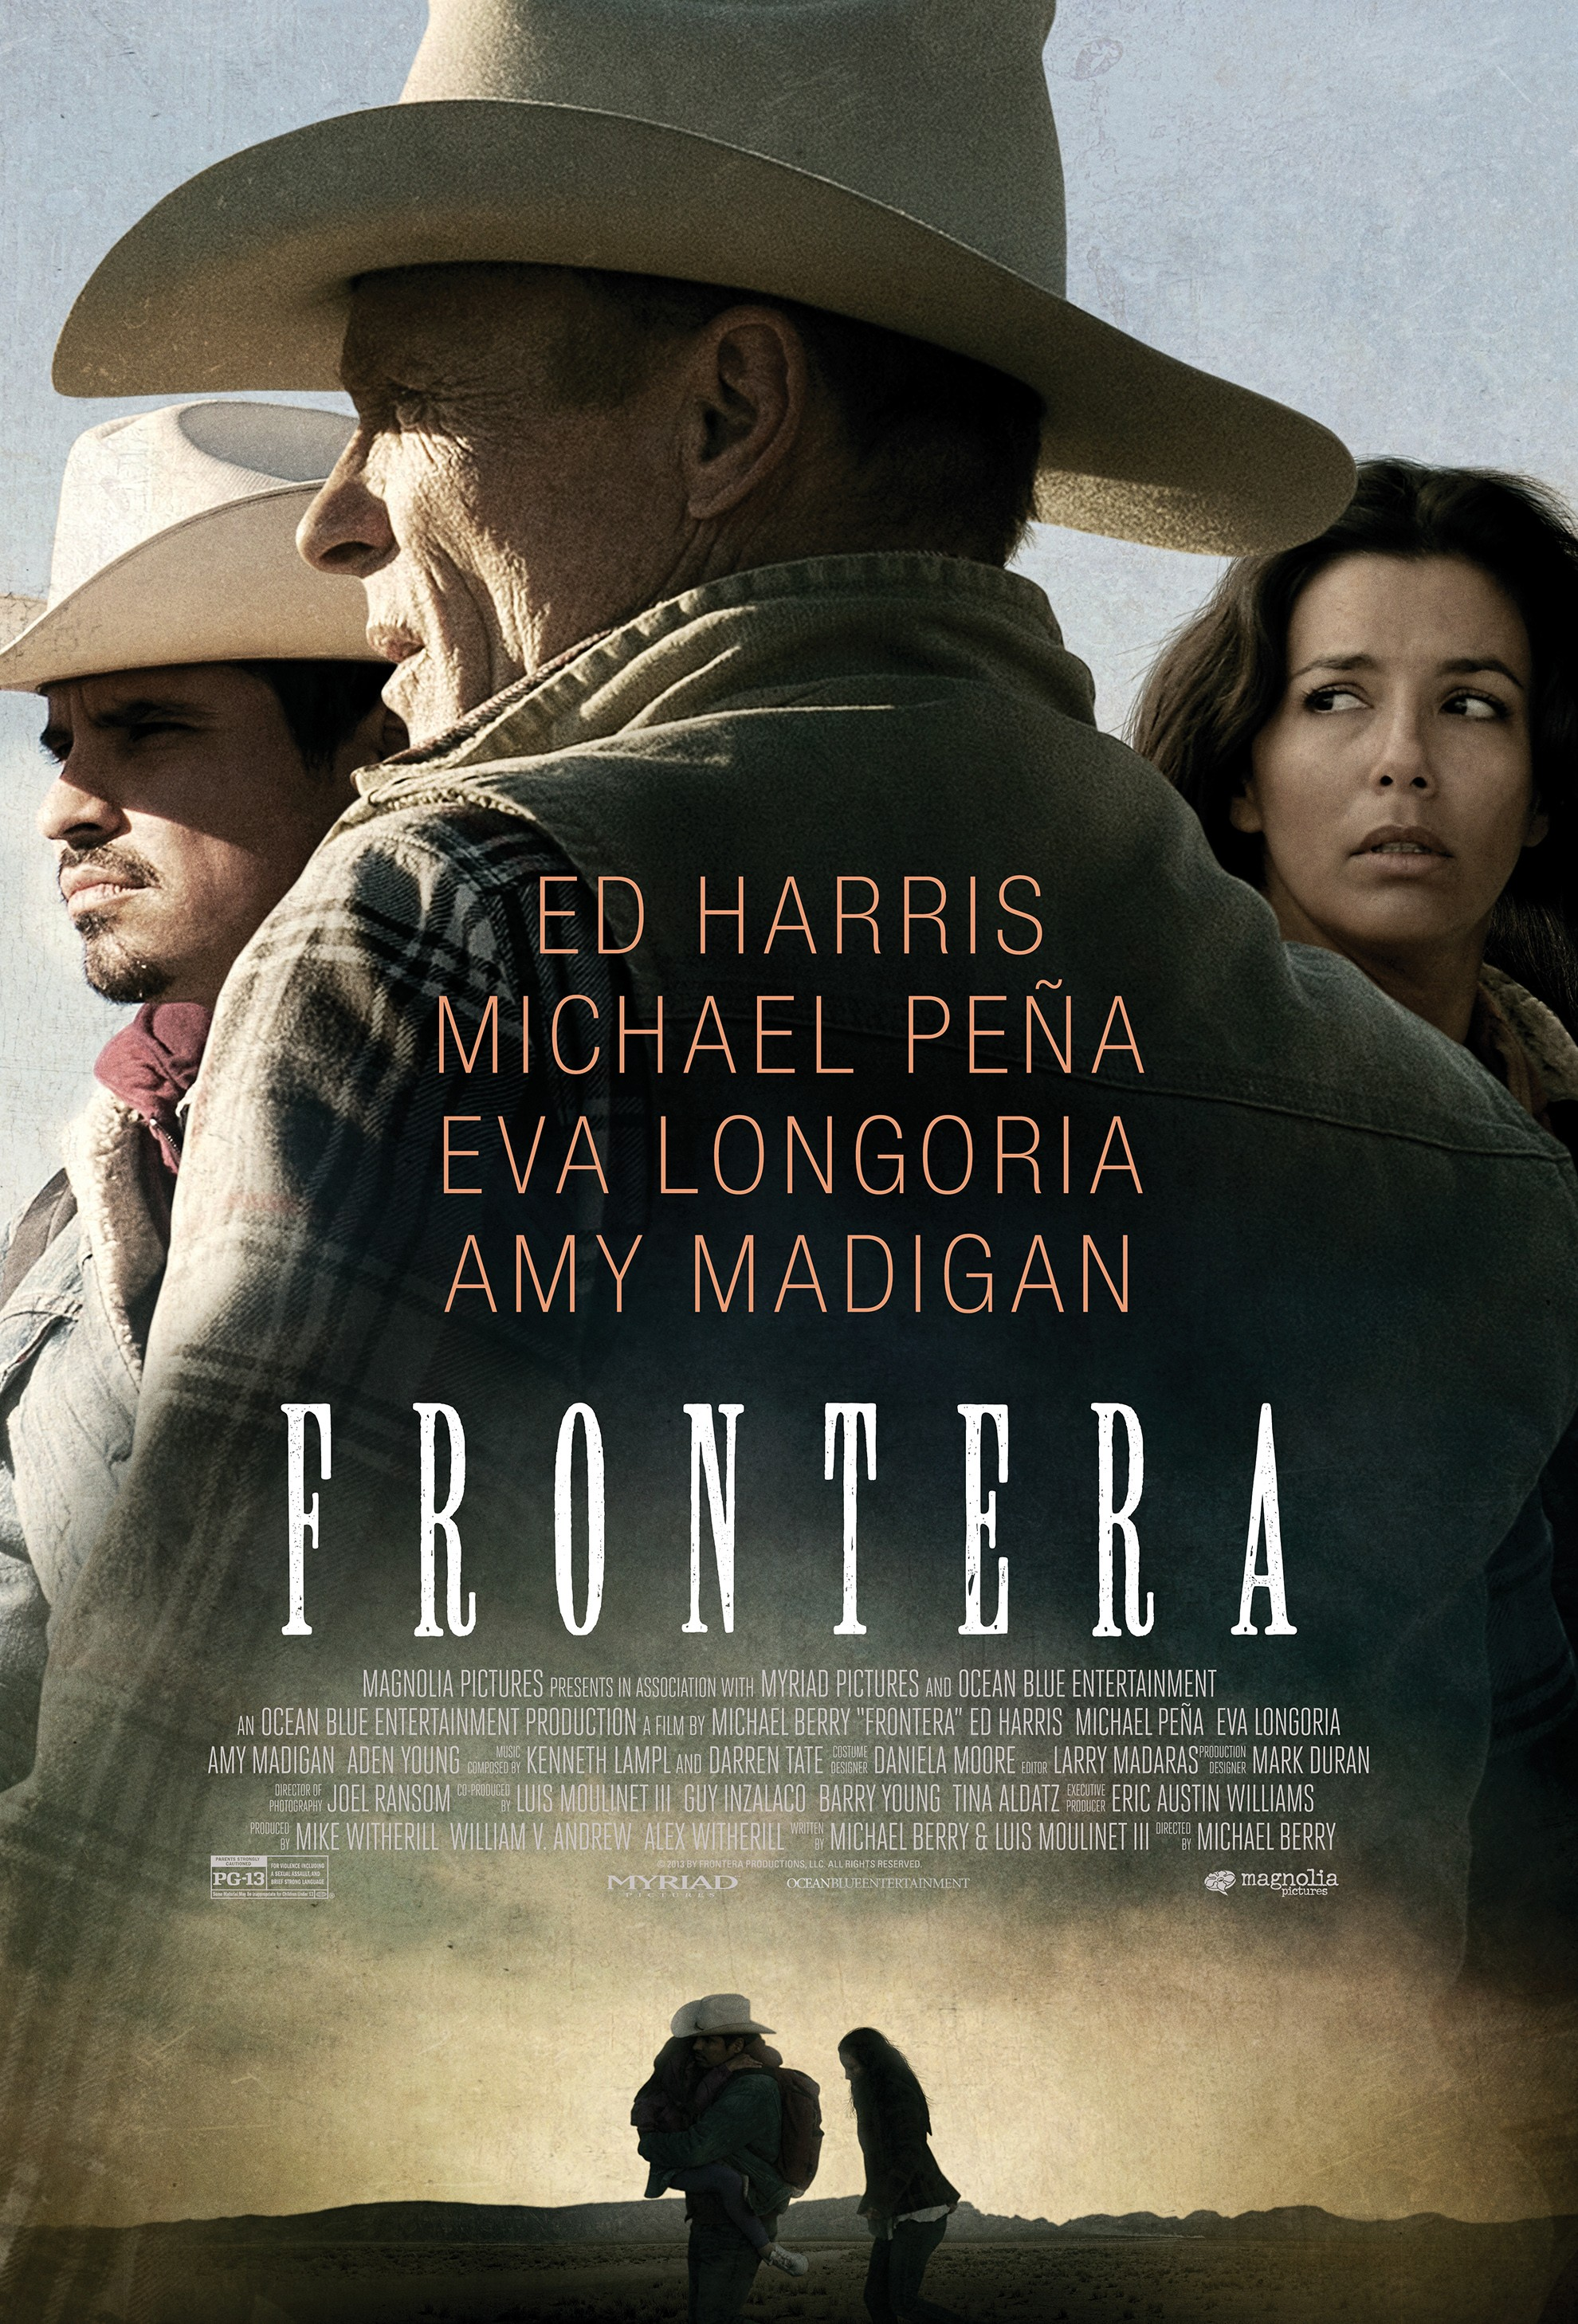 Frontera-Official Poster Banner PROMO XLG-11JUNHO2014